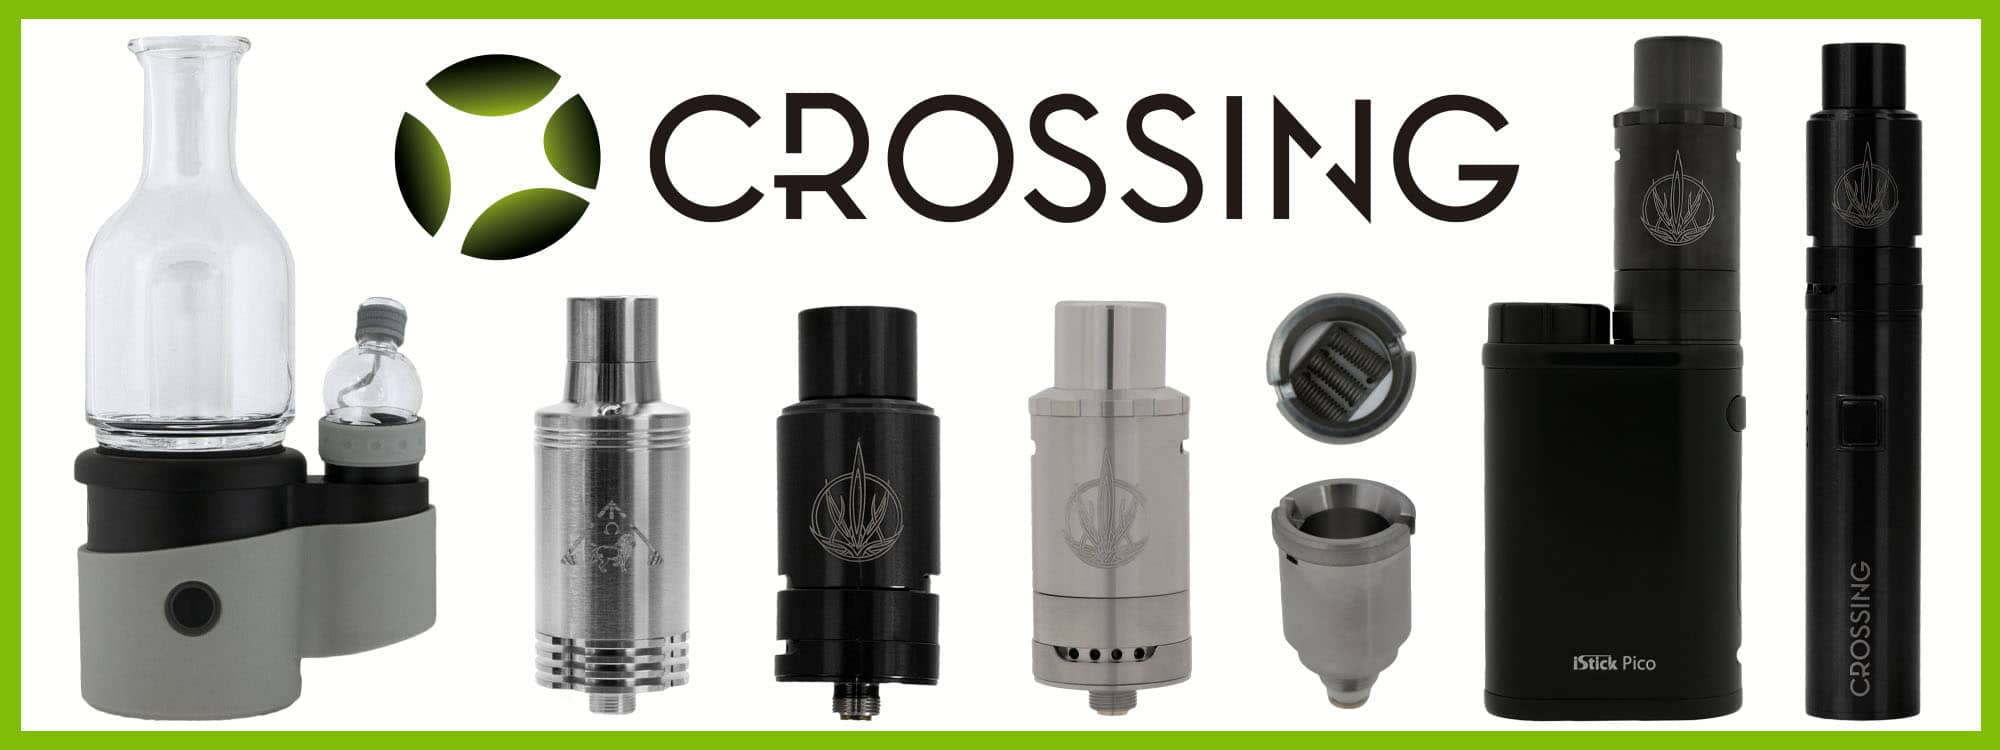 green friday sz crossing sai and core vaporizer sale